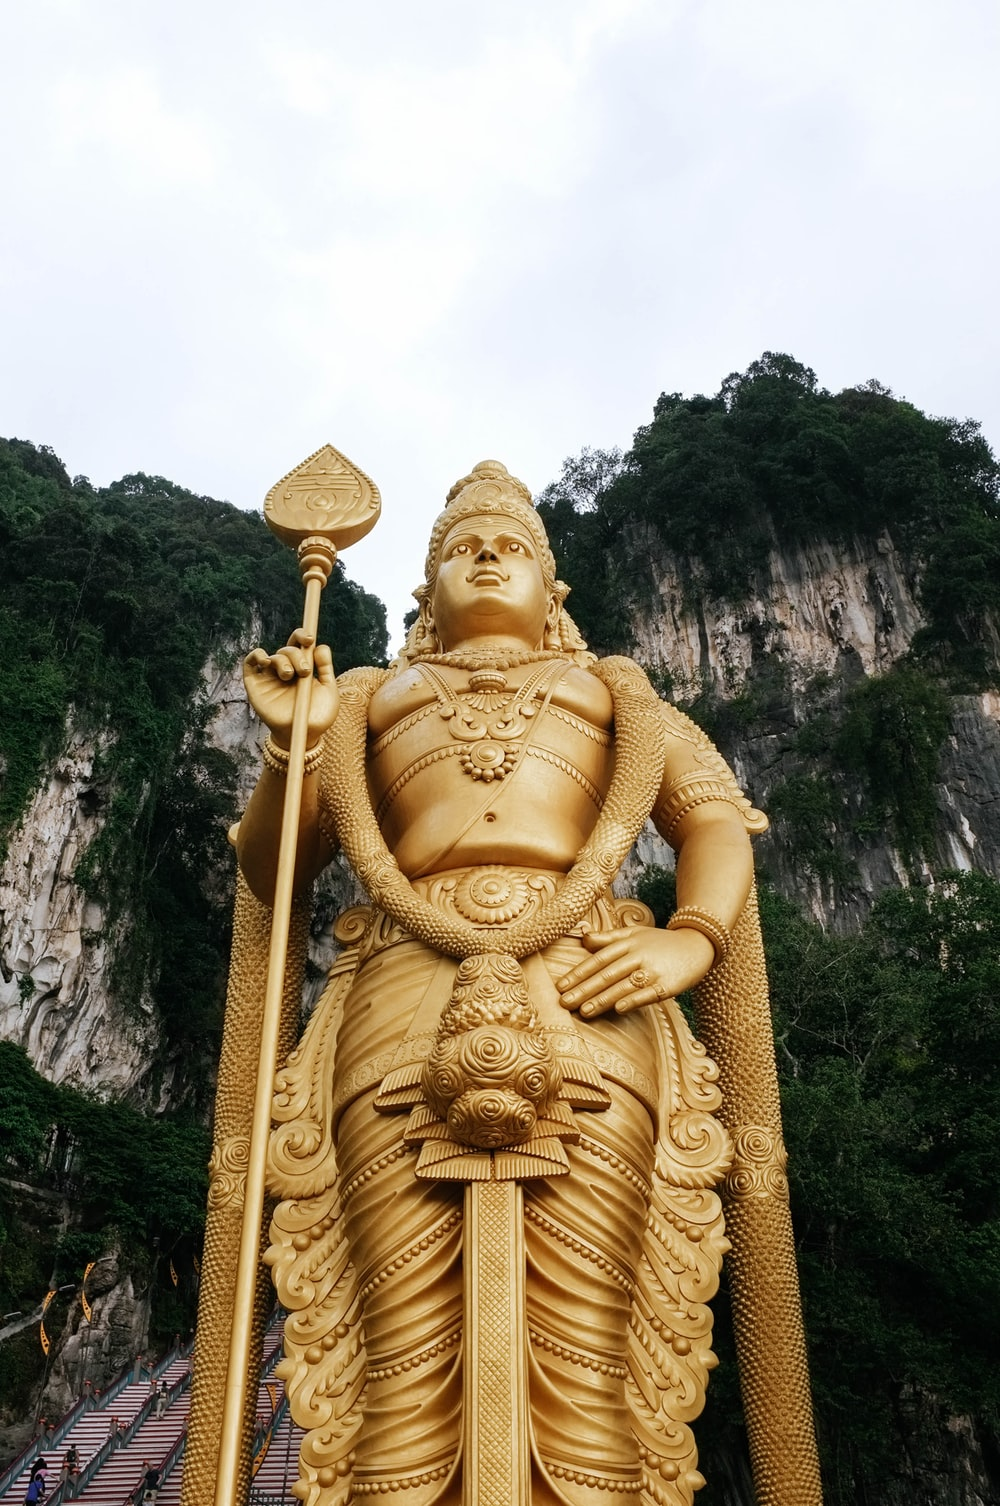 low angle photograph of Lord Murugan state near mountain cliff under cloudy sky